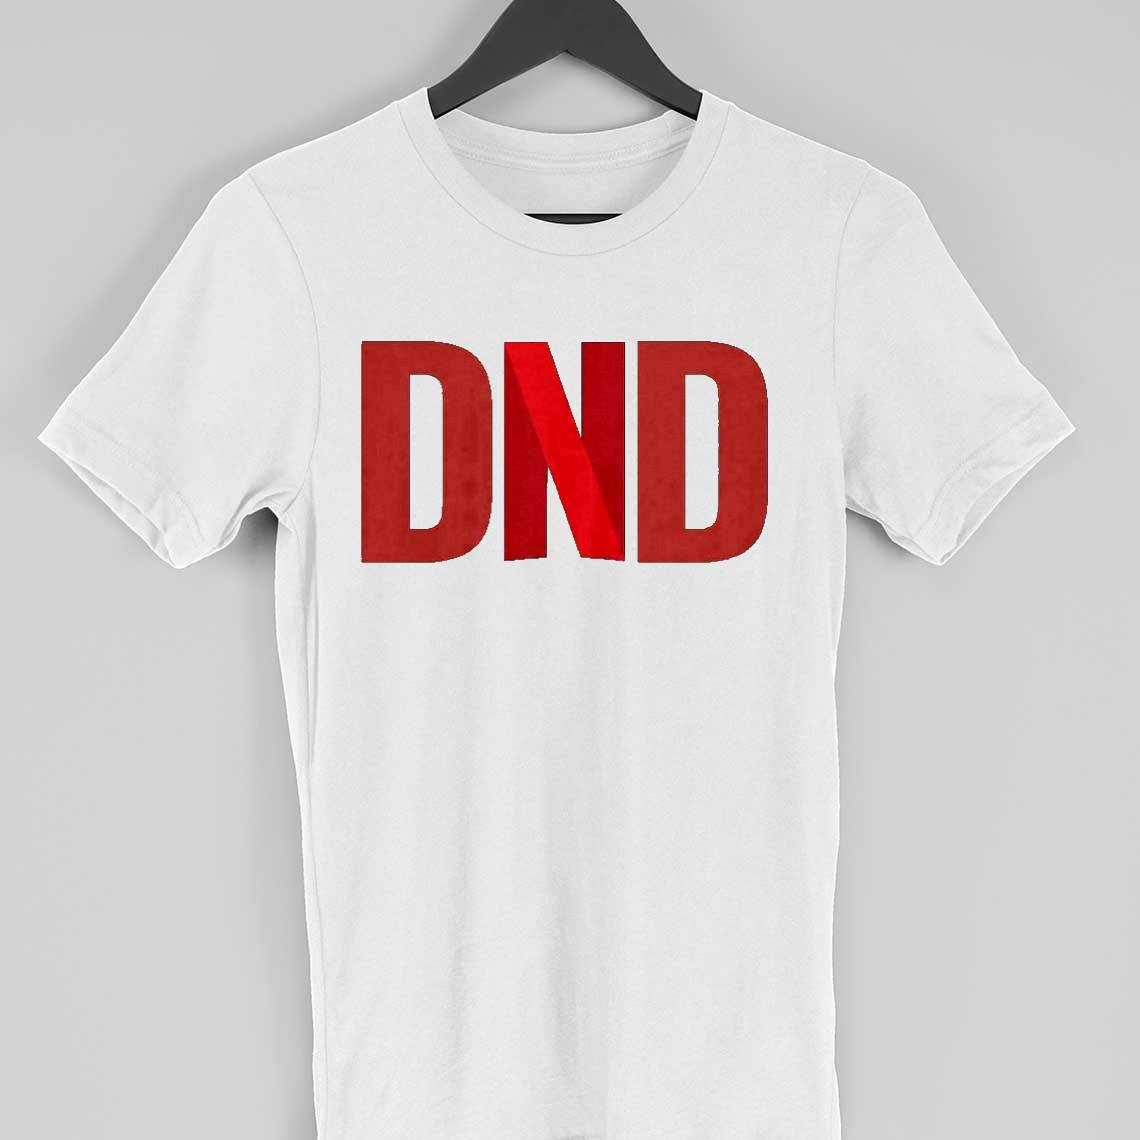 DND T-shirt (Netflix & Chill)